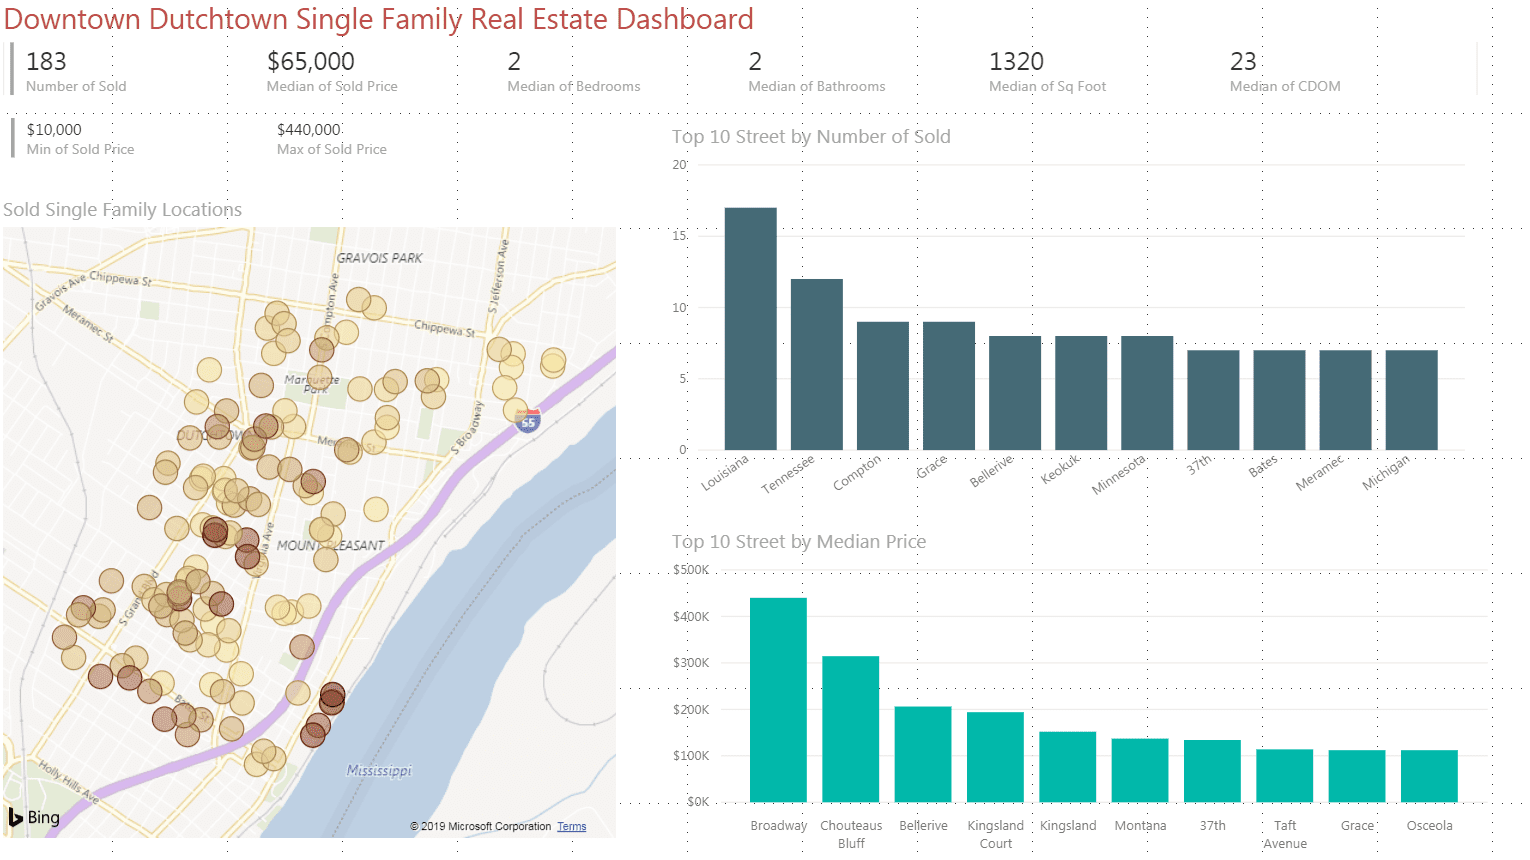 Figures for single family home sales in the Downtown Dutchtown area.